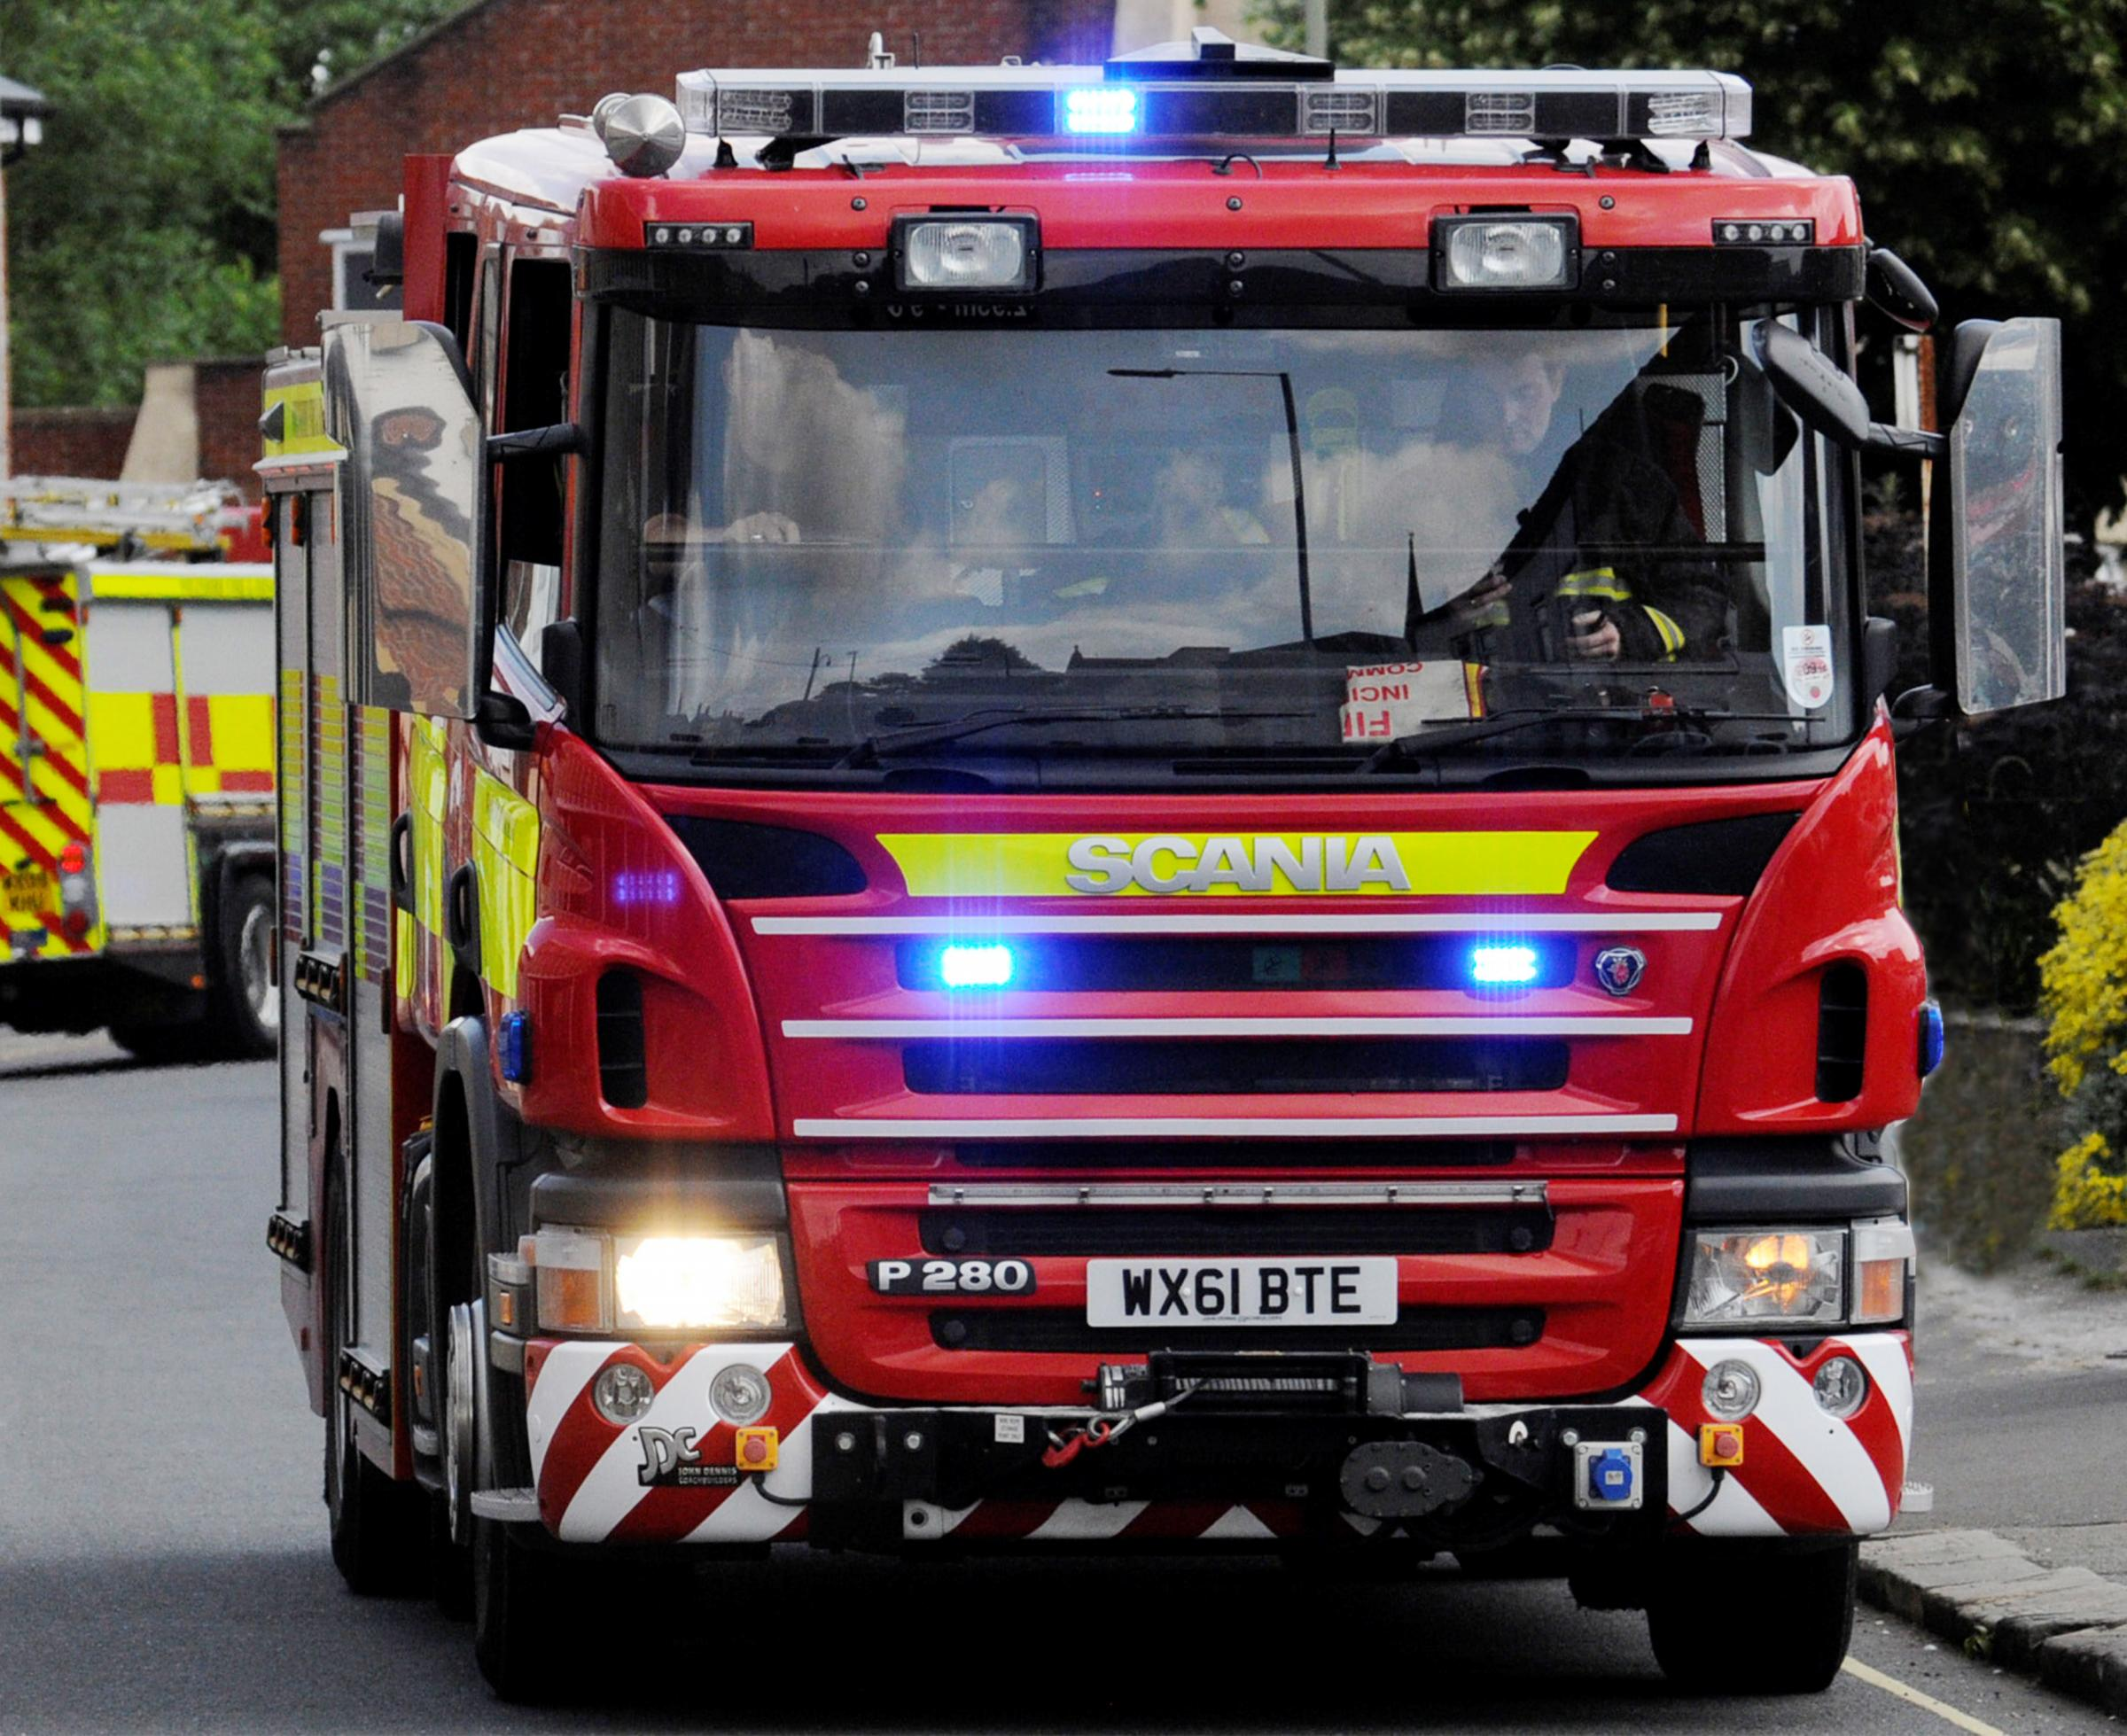 Firefighters called to car fire in early hours